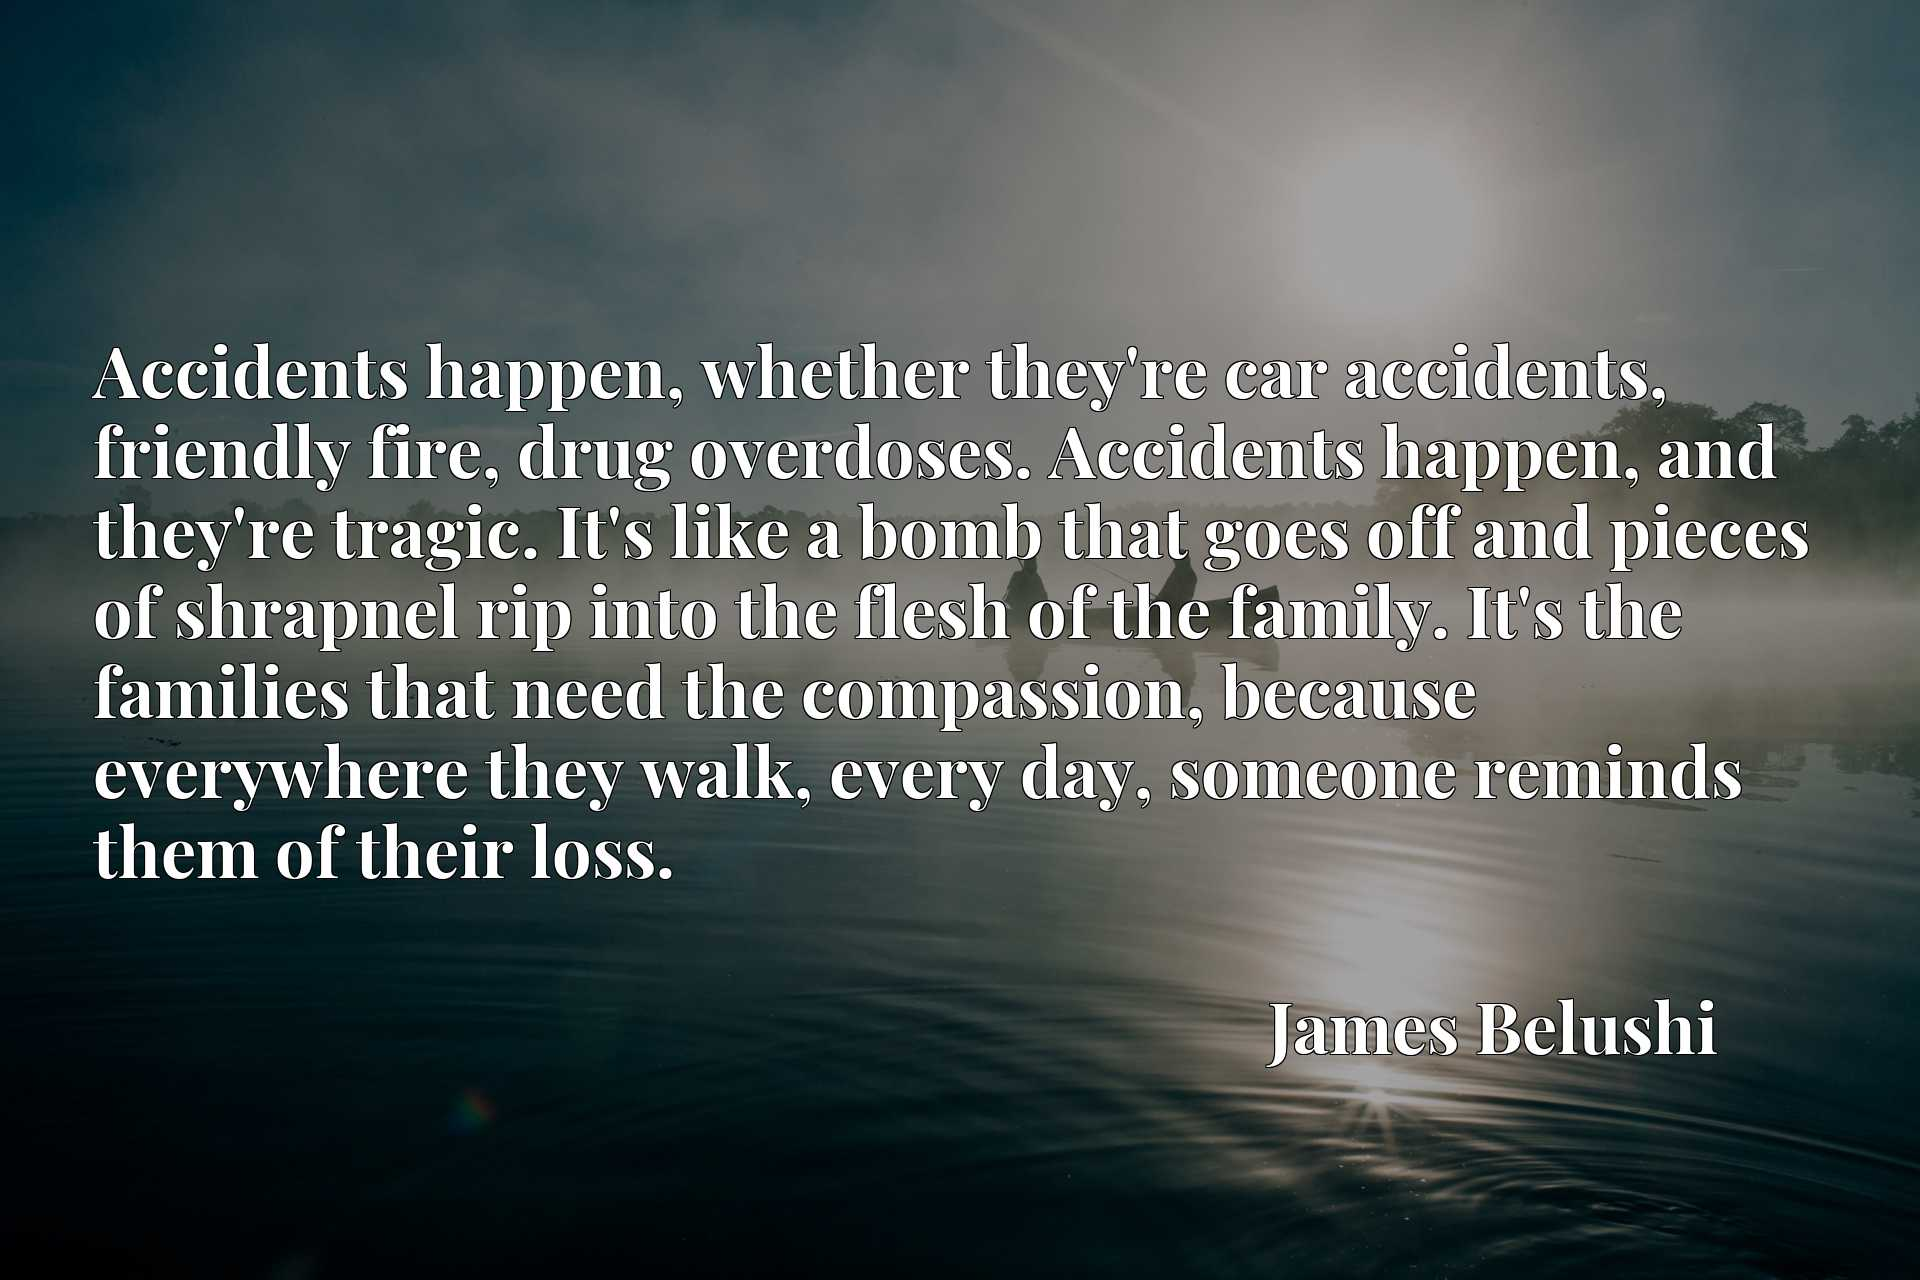 Accidents happen, whether they're car accidents, friendly fire, drug overdoses. Accidents happen, and they're tragic. It's like a bomb that goes off and pieces of shrapnel rip into the flesh of the family. It's the families that need the compassion, because everywhere they walk, every day, someone reminds them of their loss.